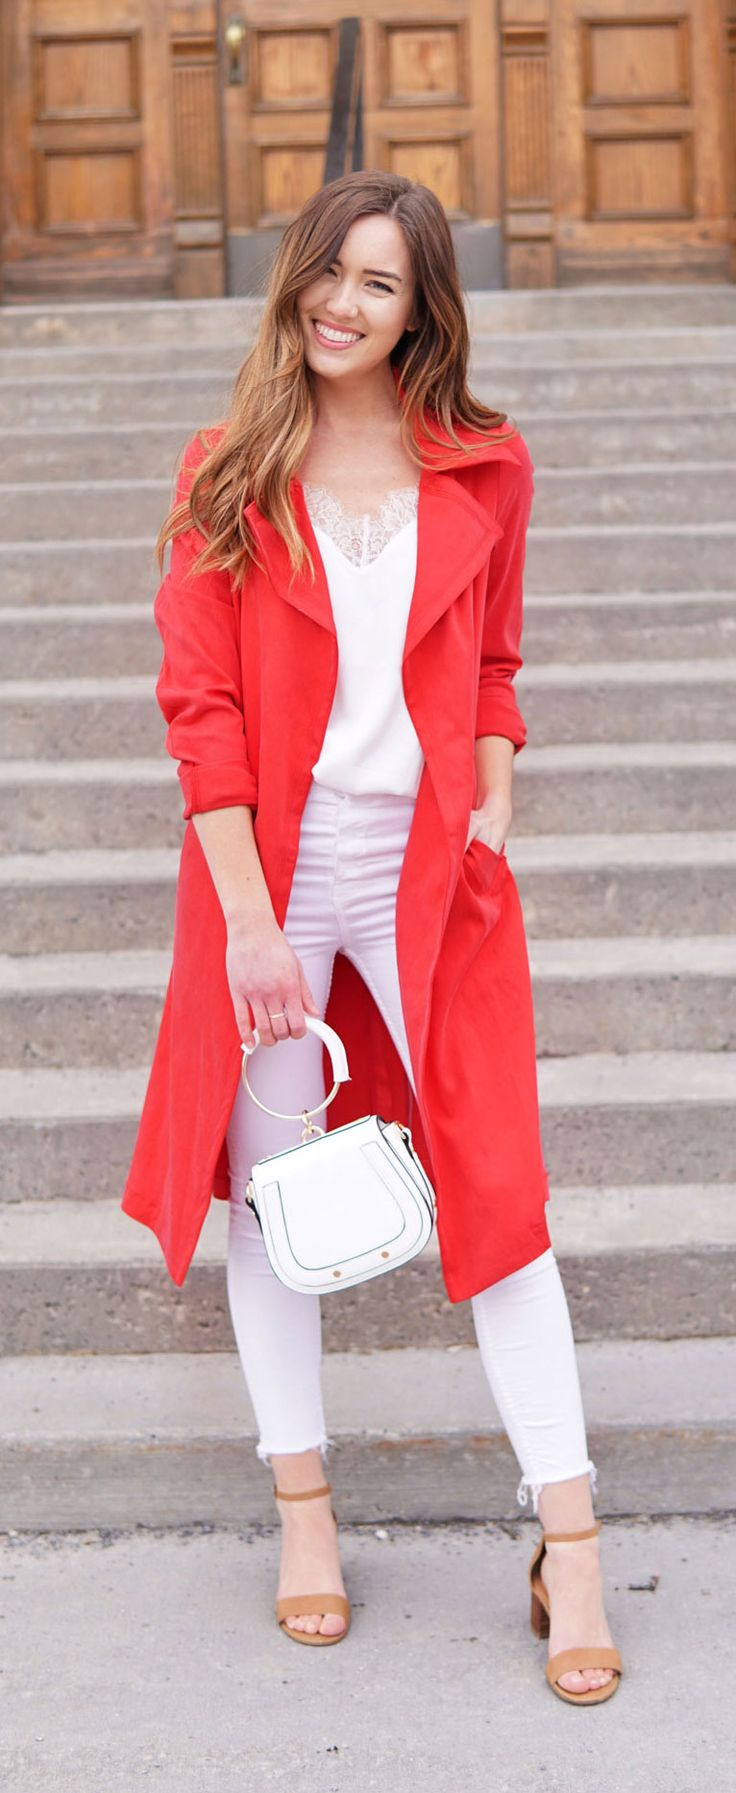 BEST RED TRENCH COAT- super affordable and soft! Marie's Bazaar wears it with an all white outfit for spring. This white lace tank top comes in 7 shades, and these are the best white skinny jeans ever - so flattering! #fashion #outfit #spring #springoutfit #whiteoutfit #whitejeans #skinnyjeans #trenchcoat